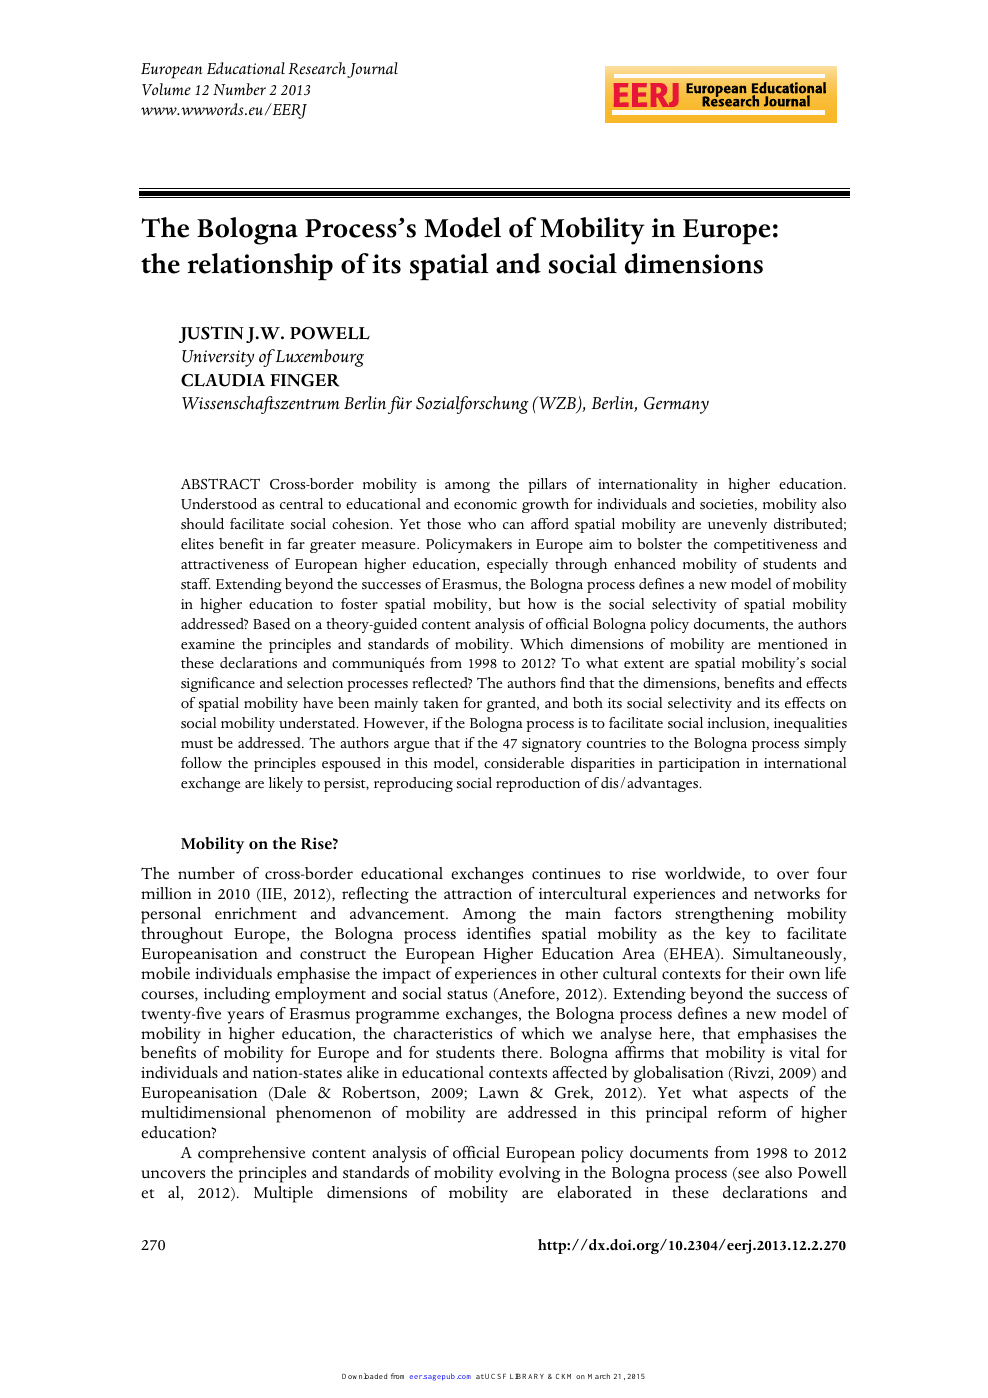 The Bologna Process's Model of Mobility in Europe: the